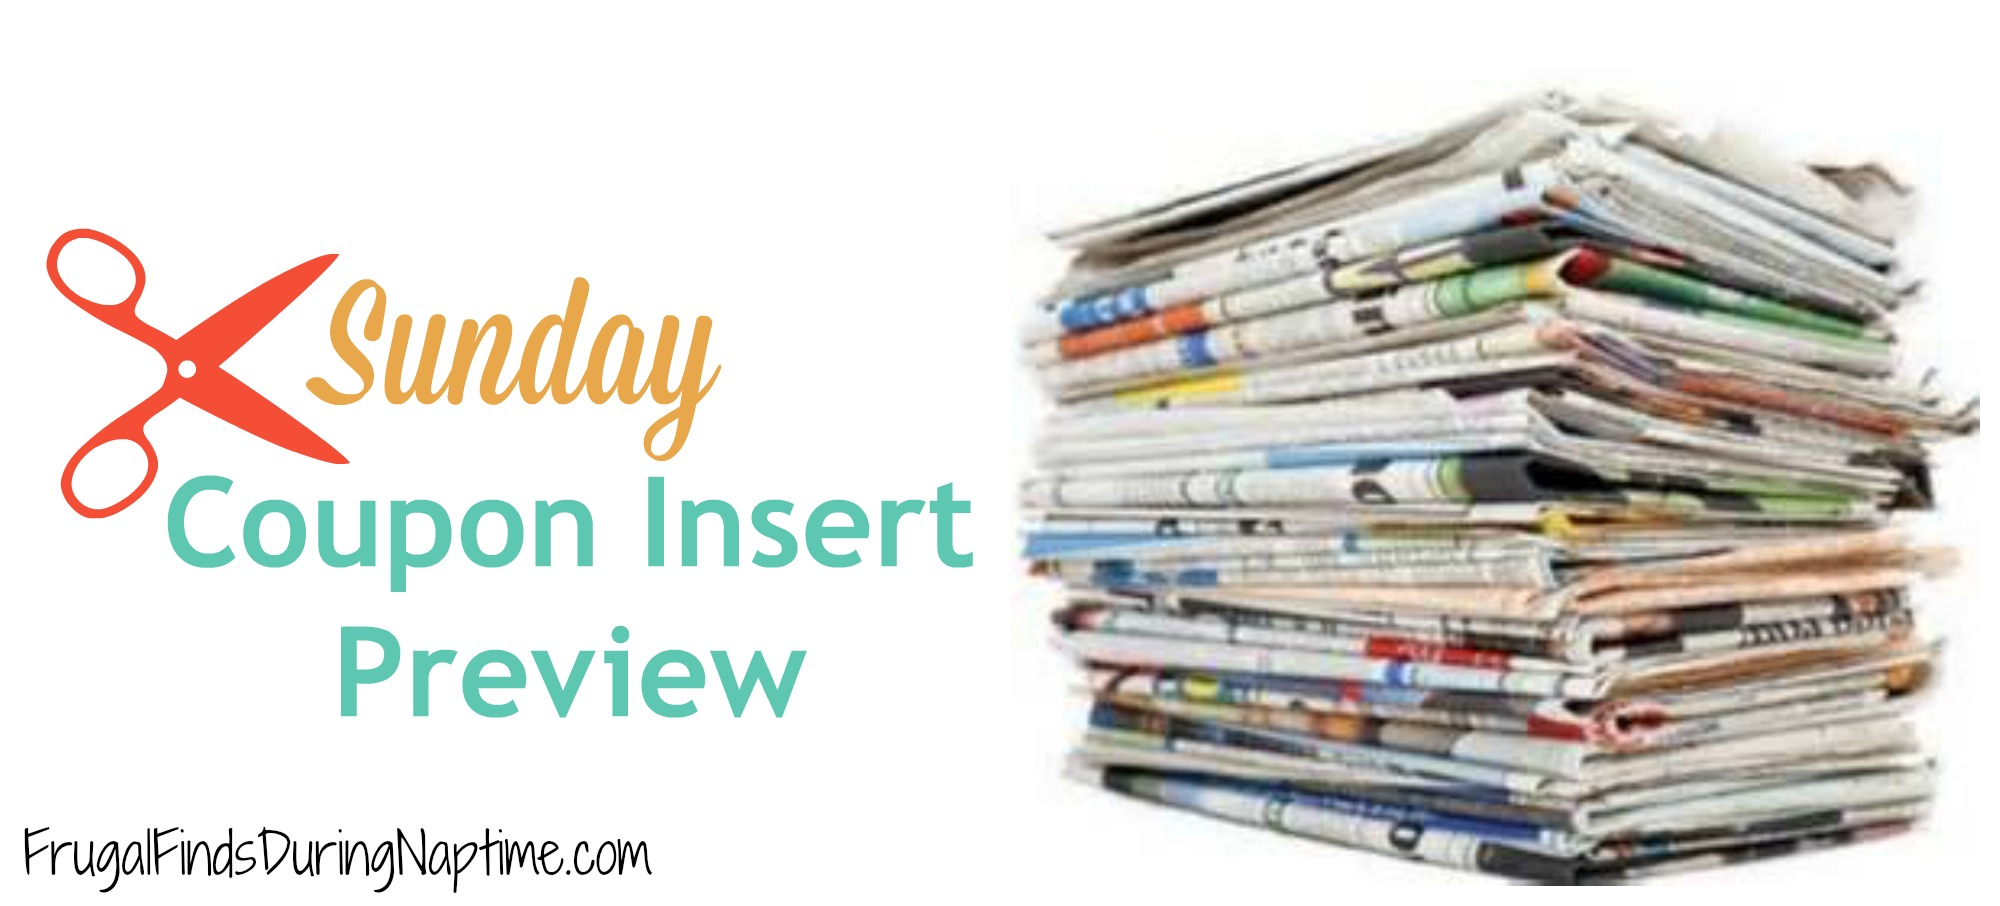 Coupon Insert Preview May 28